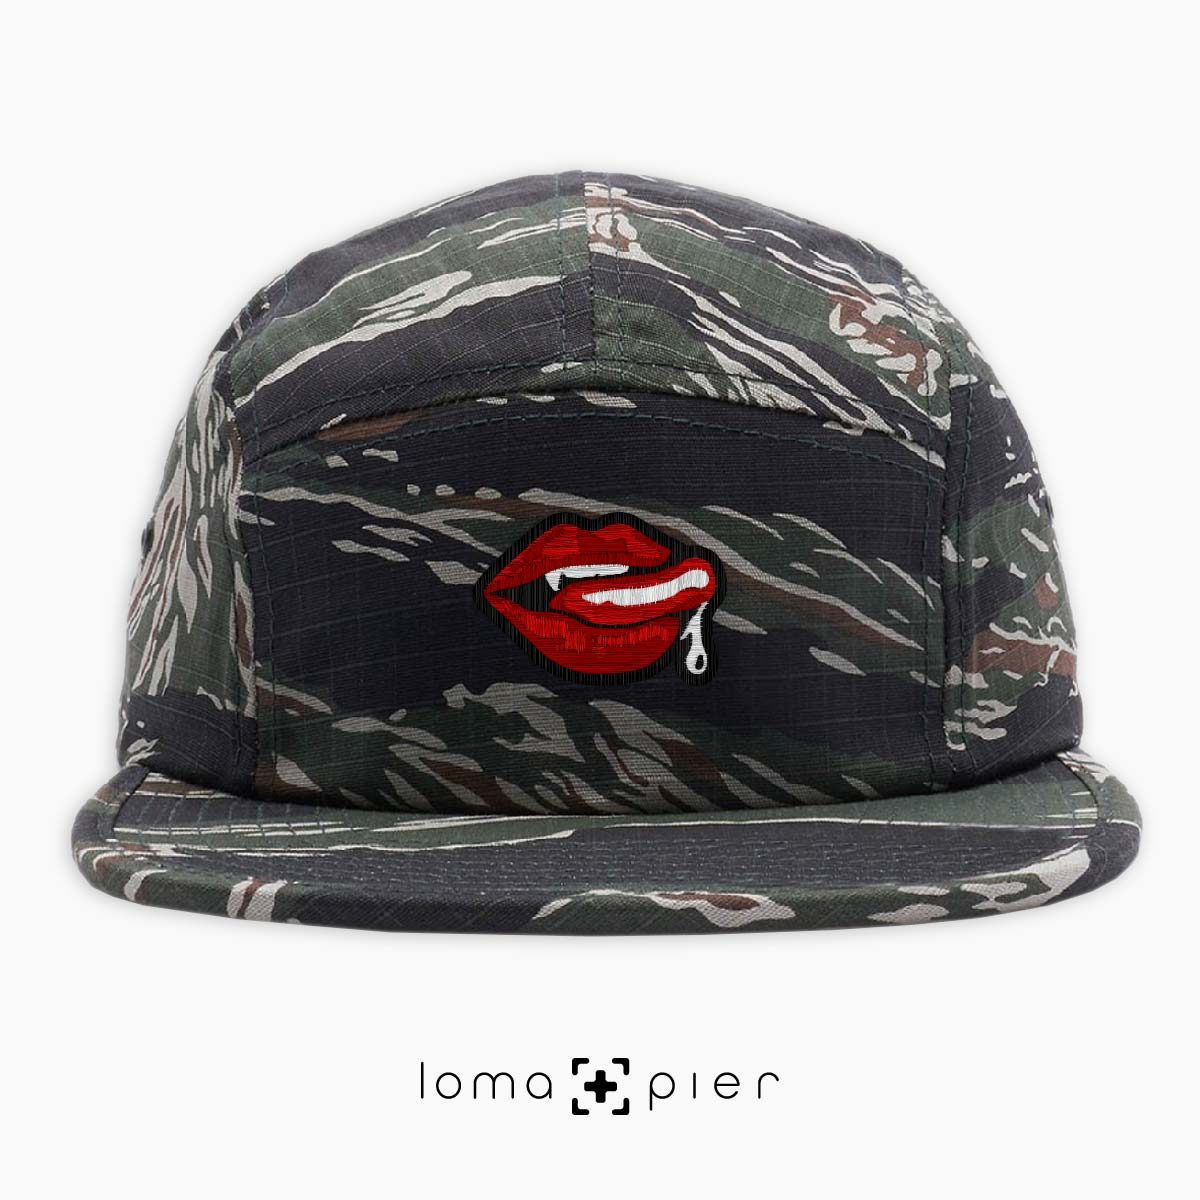 SUCCUBUS icon embroidered on a camo cotton 5-panel hat with multicolor thread by loma+pier hat store